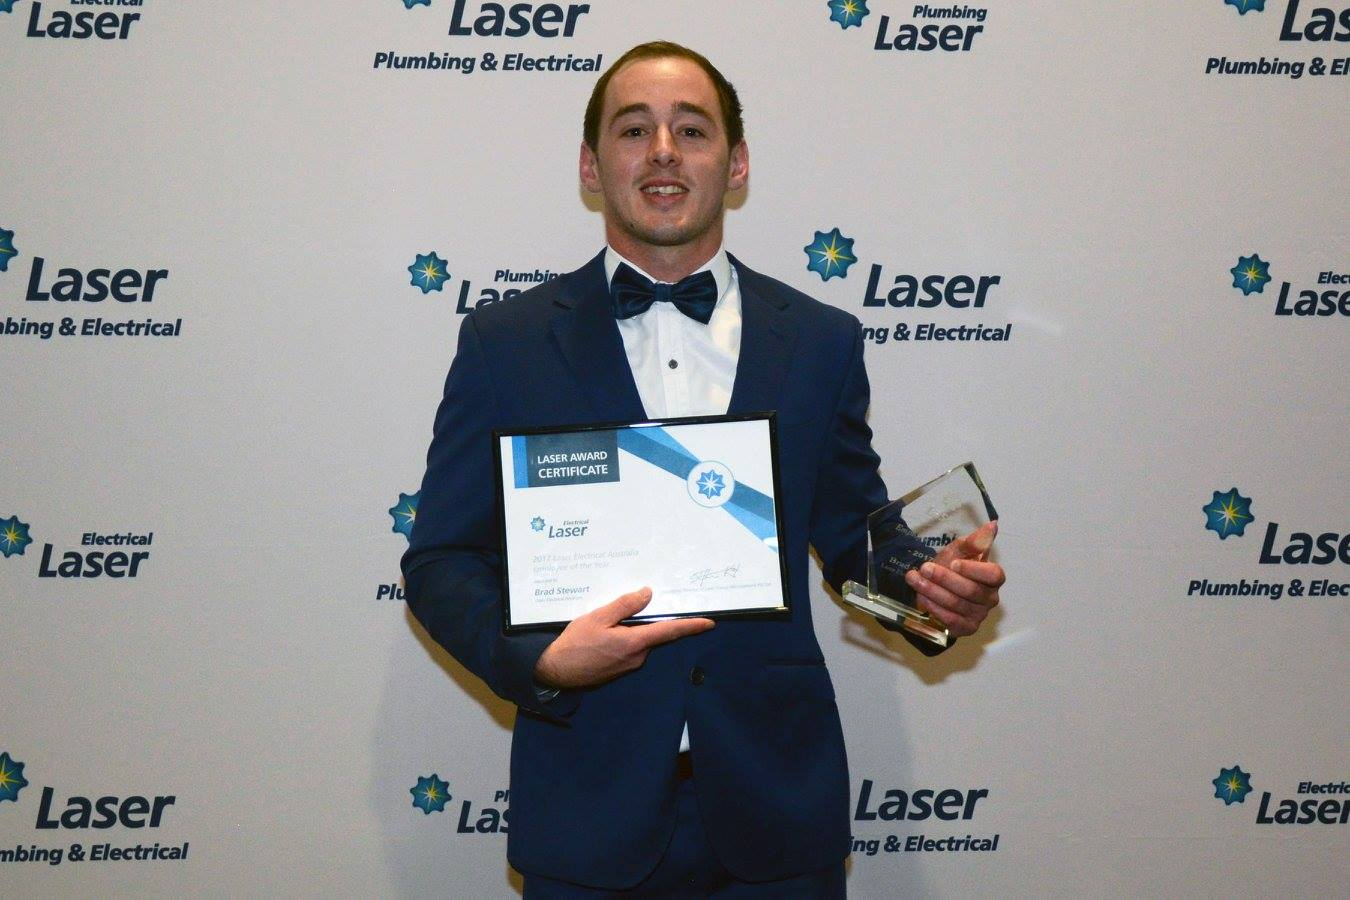 Horsham Laser Electrical electrician wins nation-wide award